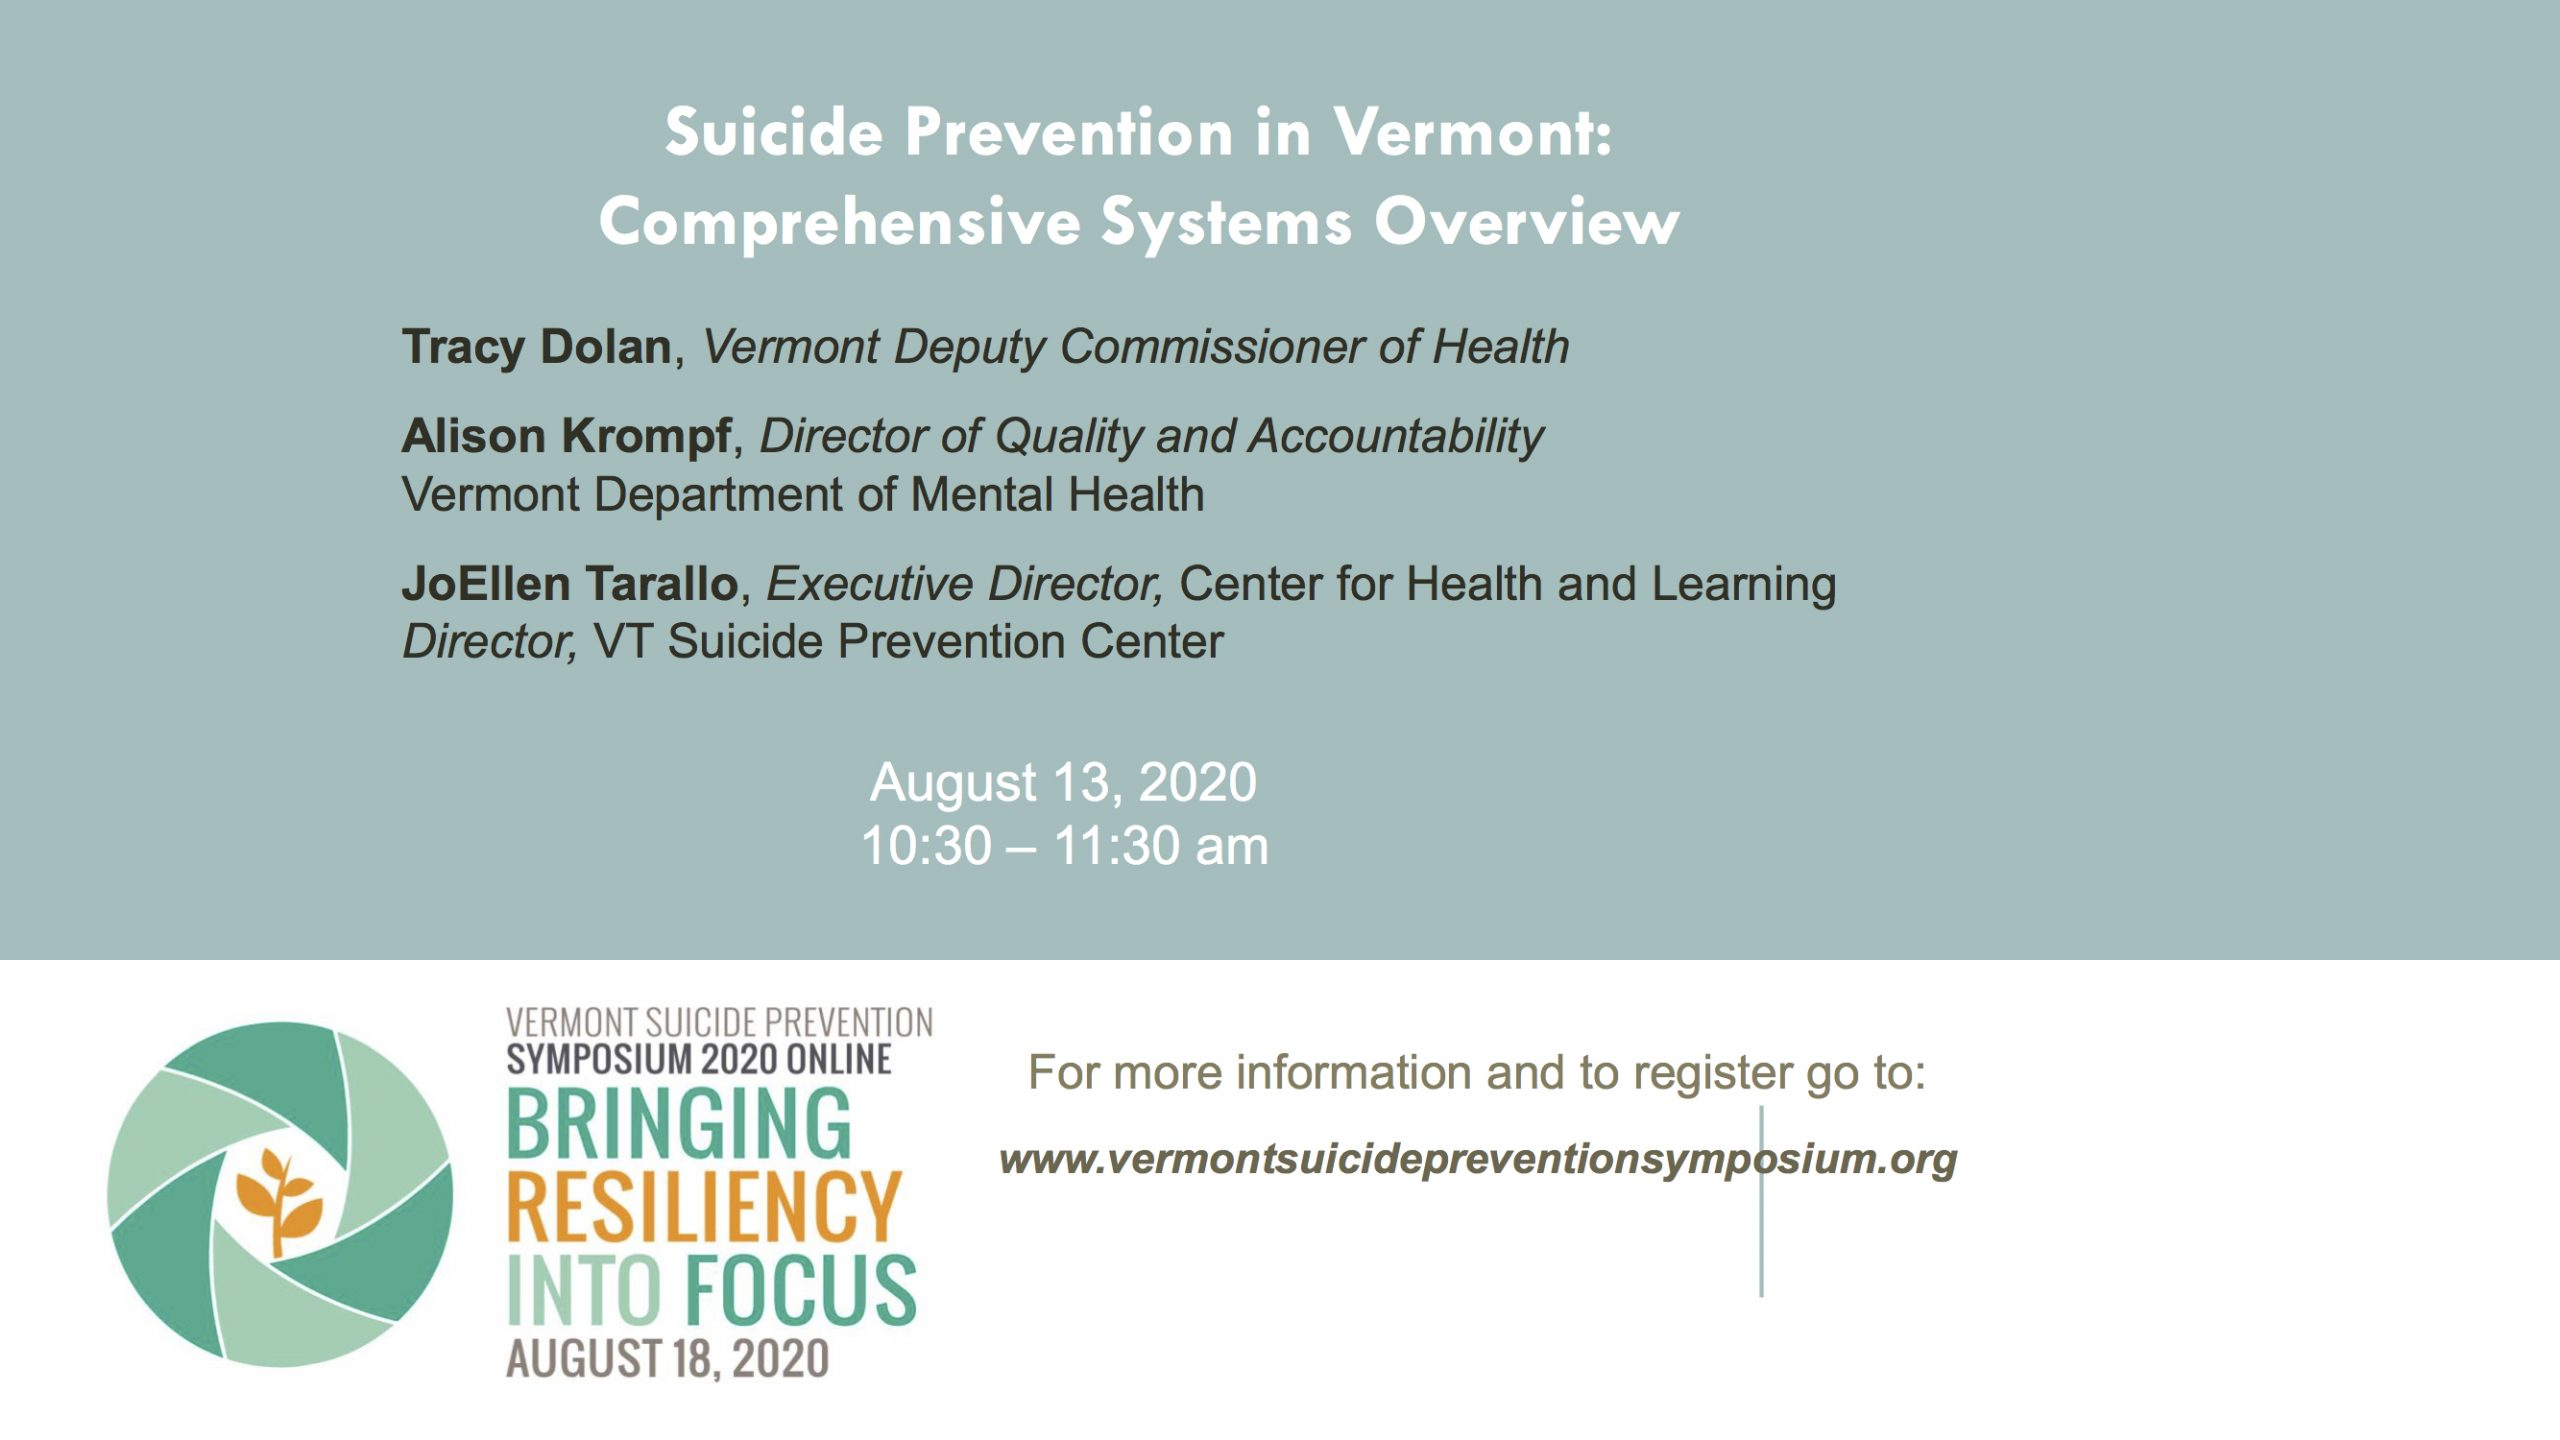 Suicide Prevention in Vermont: Comprehensive Systems Overview